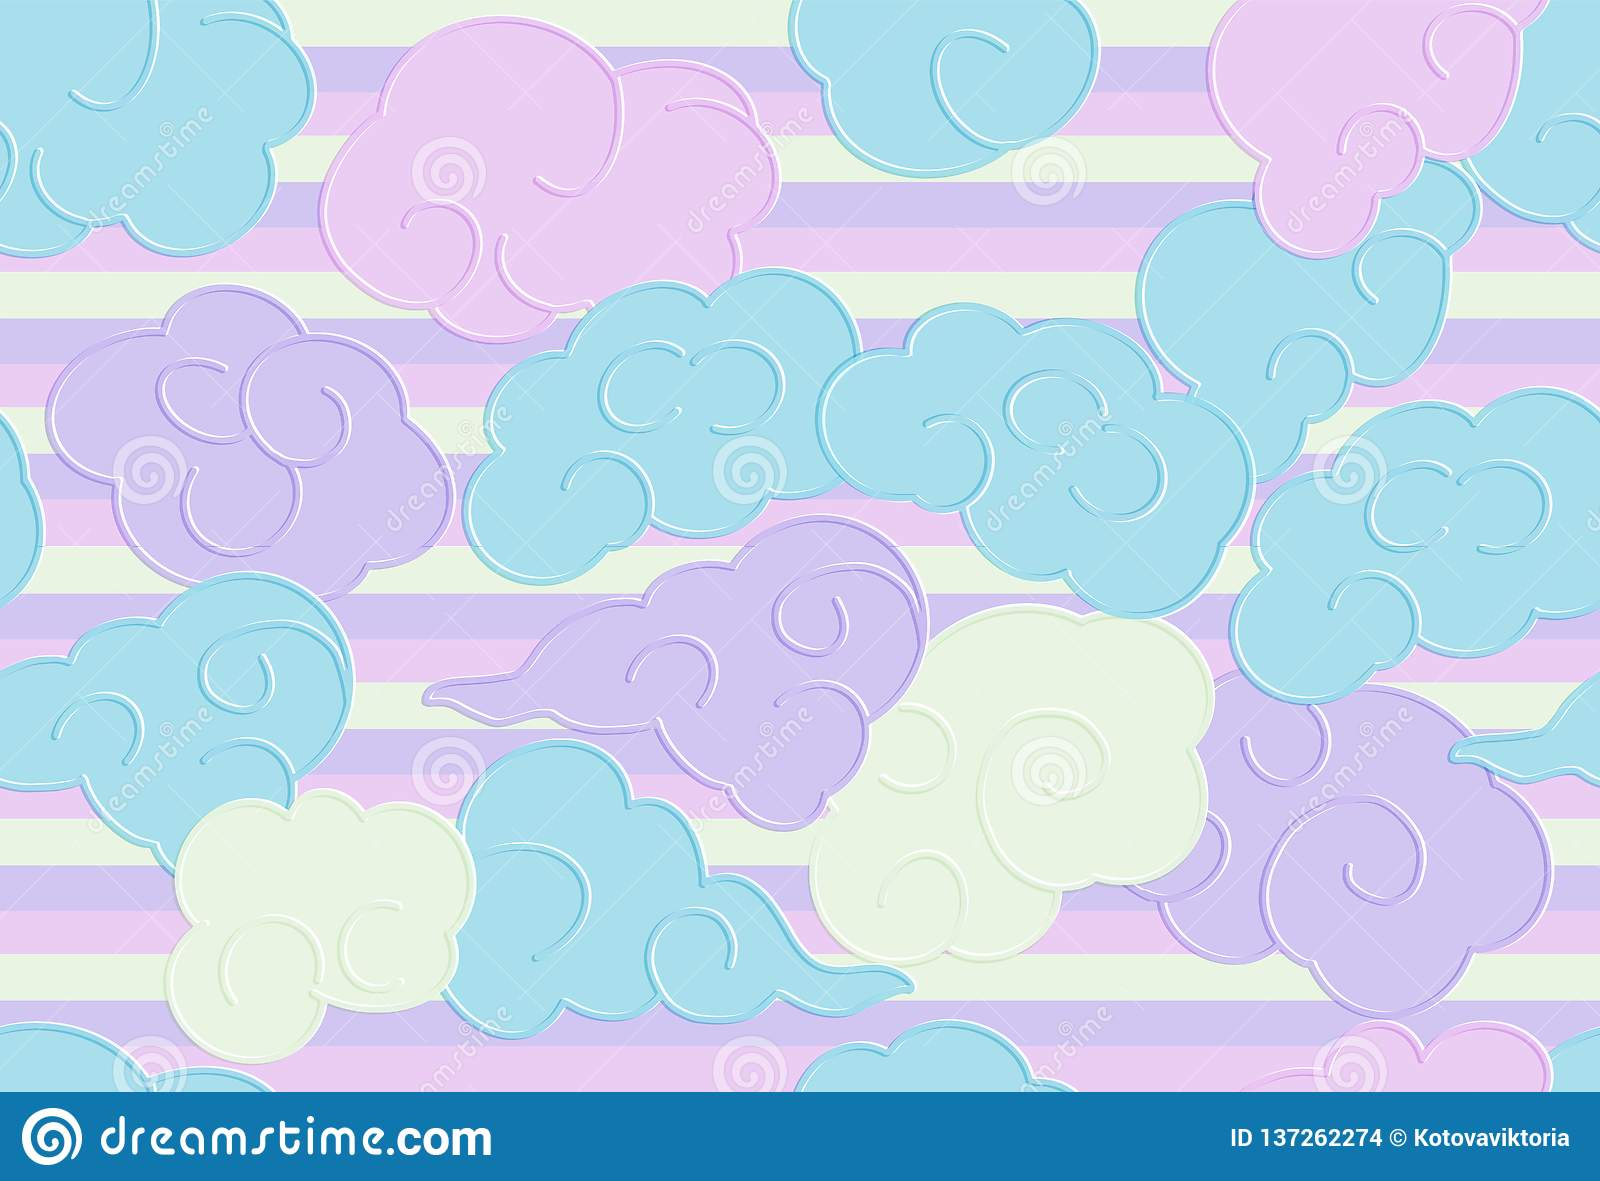 Seamless pattern with funny doodle clouds for prints, designs and coloring books. Nursery Background for Kidn